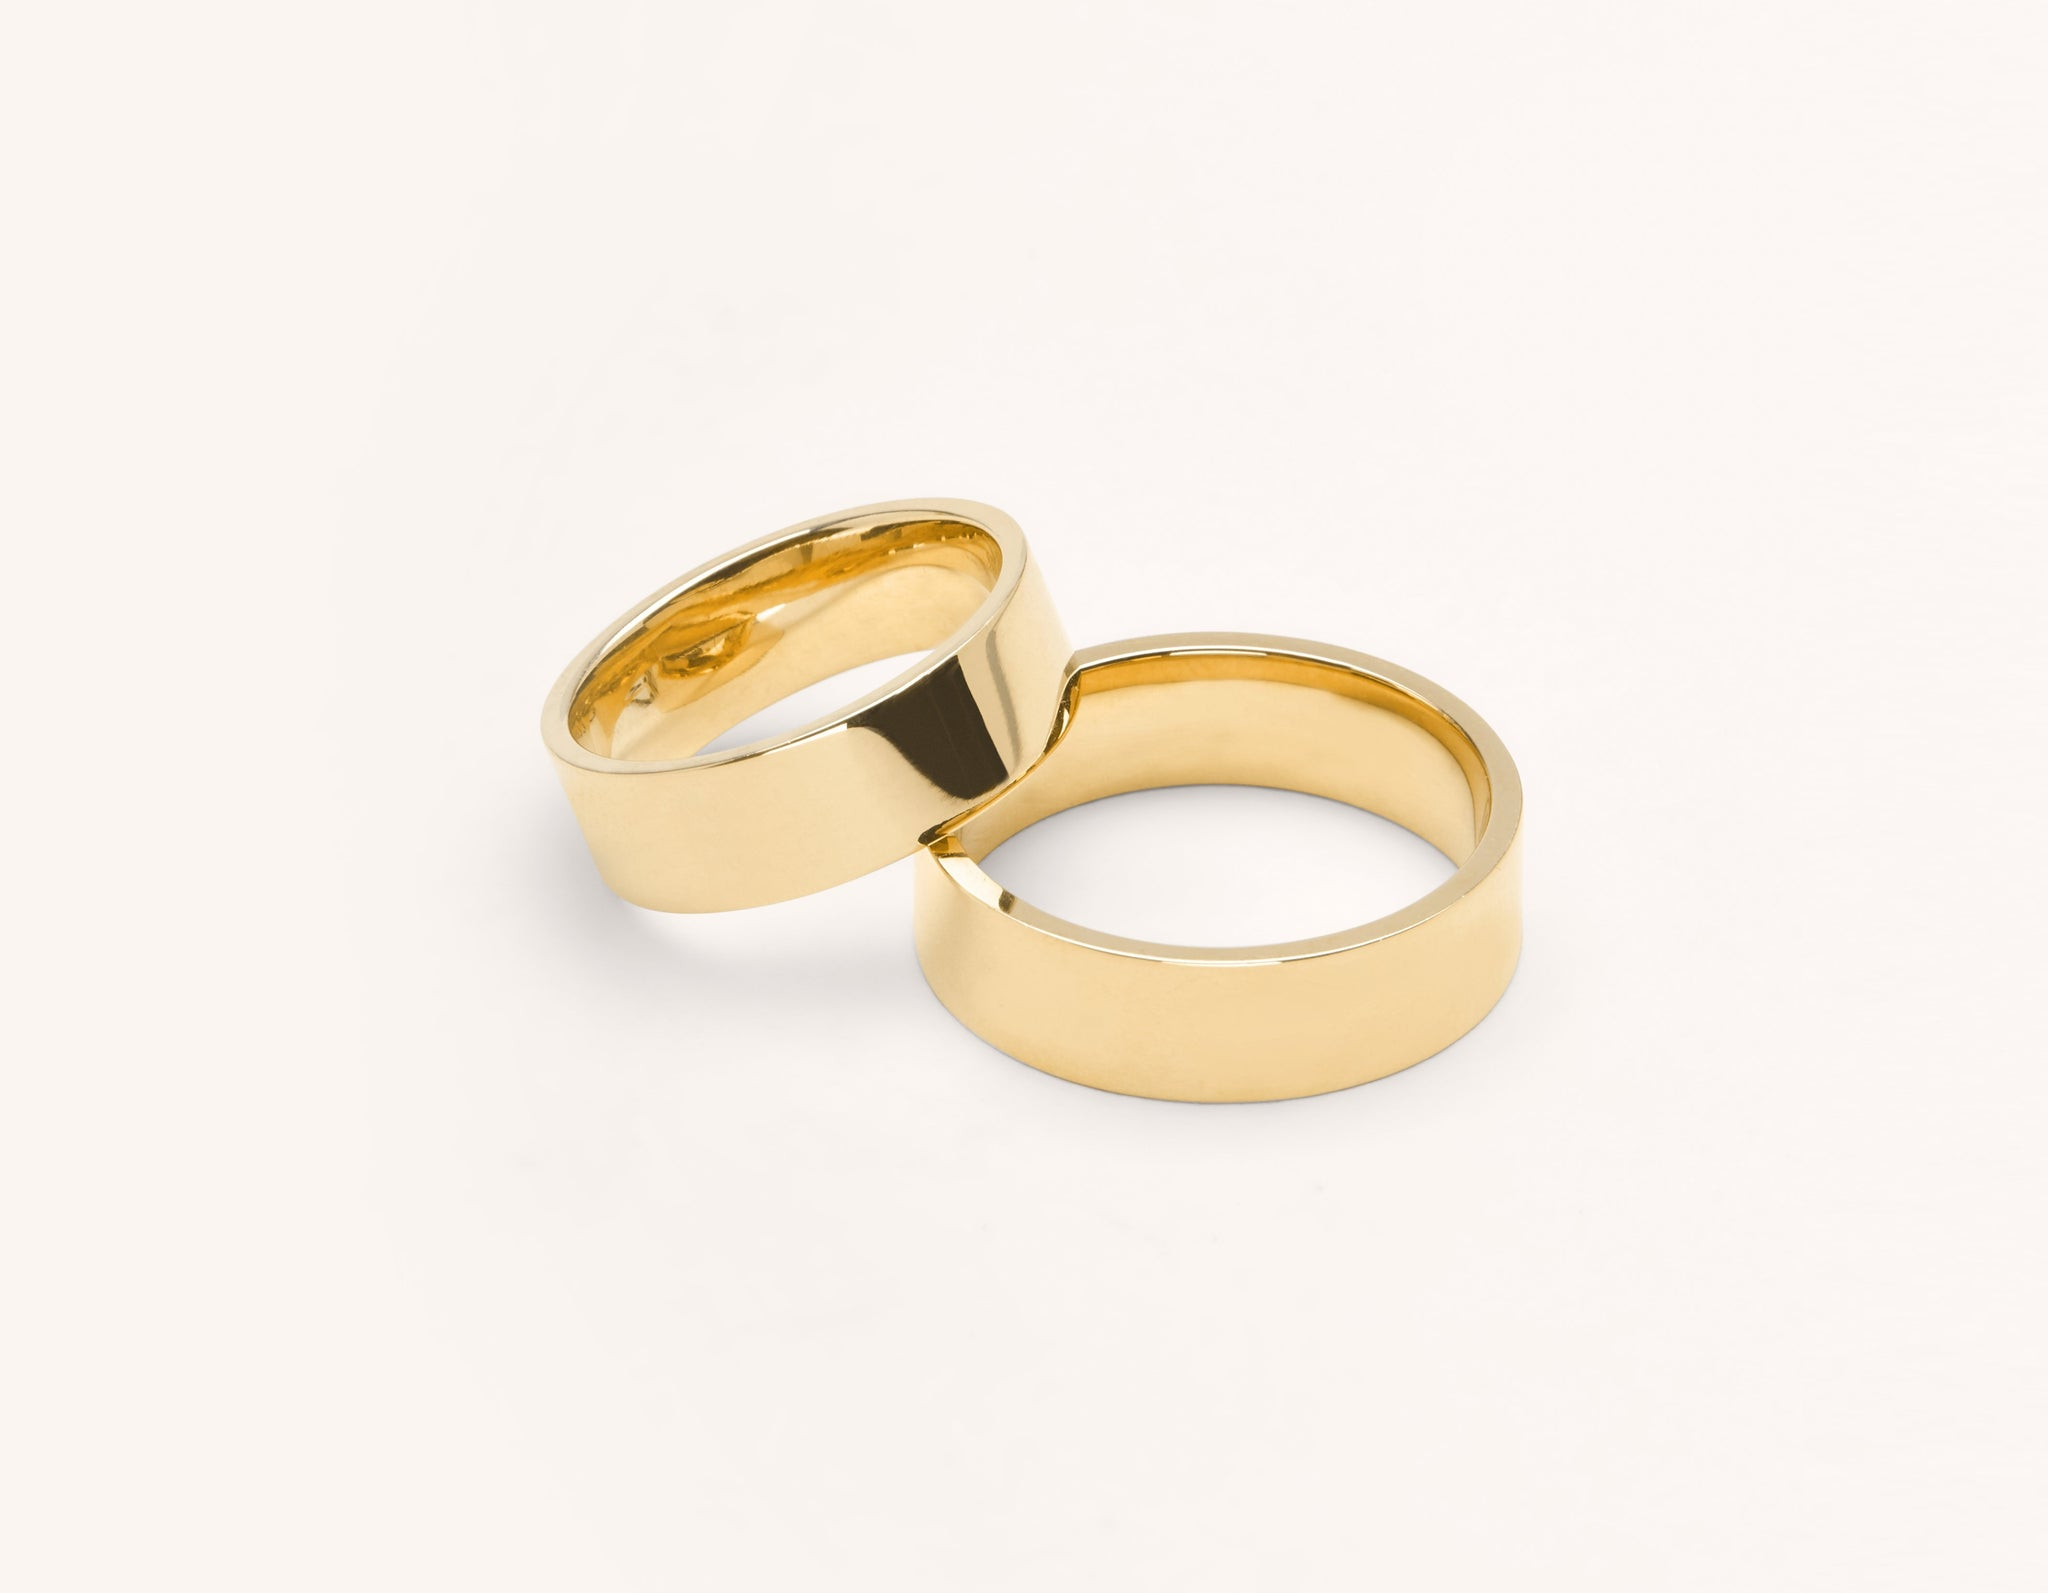 Vrai & Oro 18k solid yellow gold Wedding Band 6 Flat unisex simple classic band